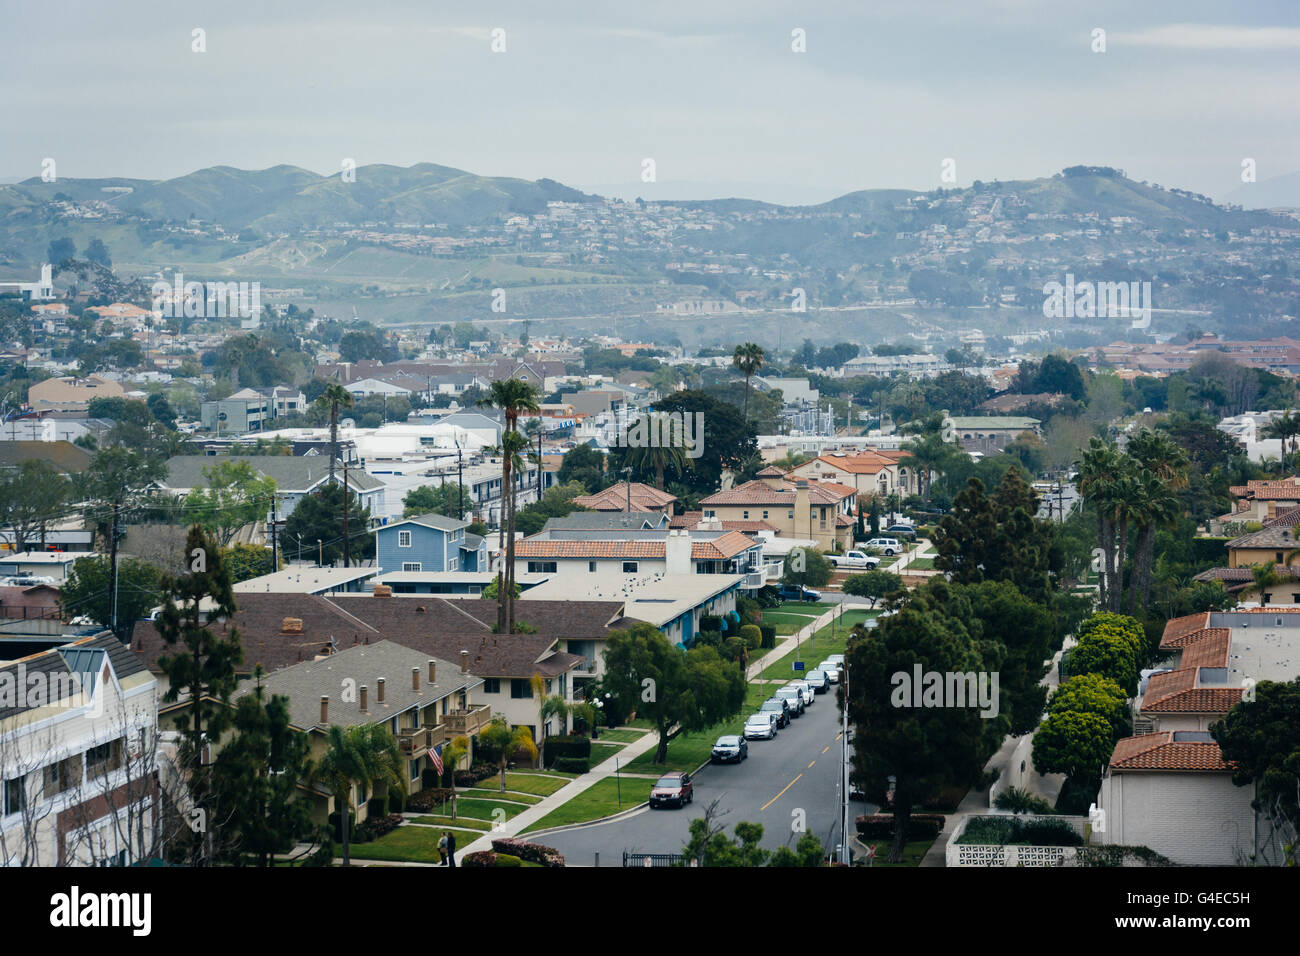 View of houses and hills in Dana Point, California. - Stock Image